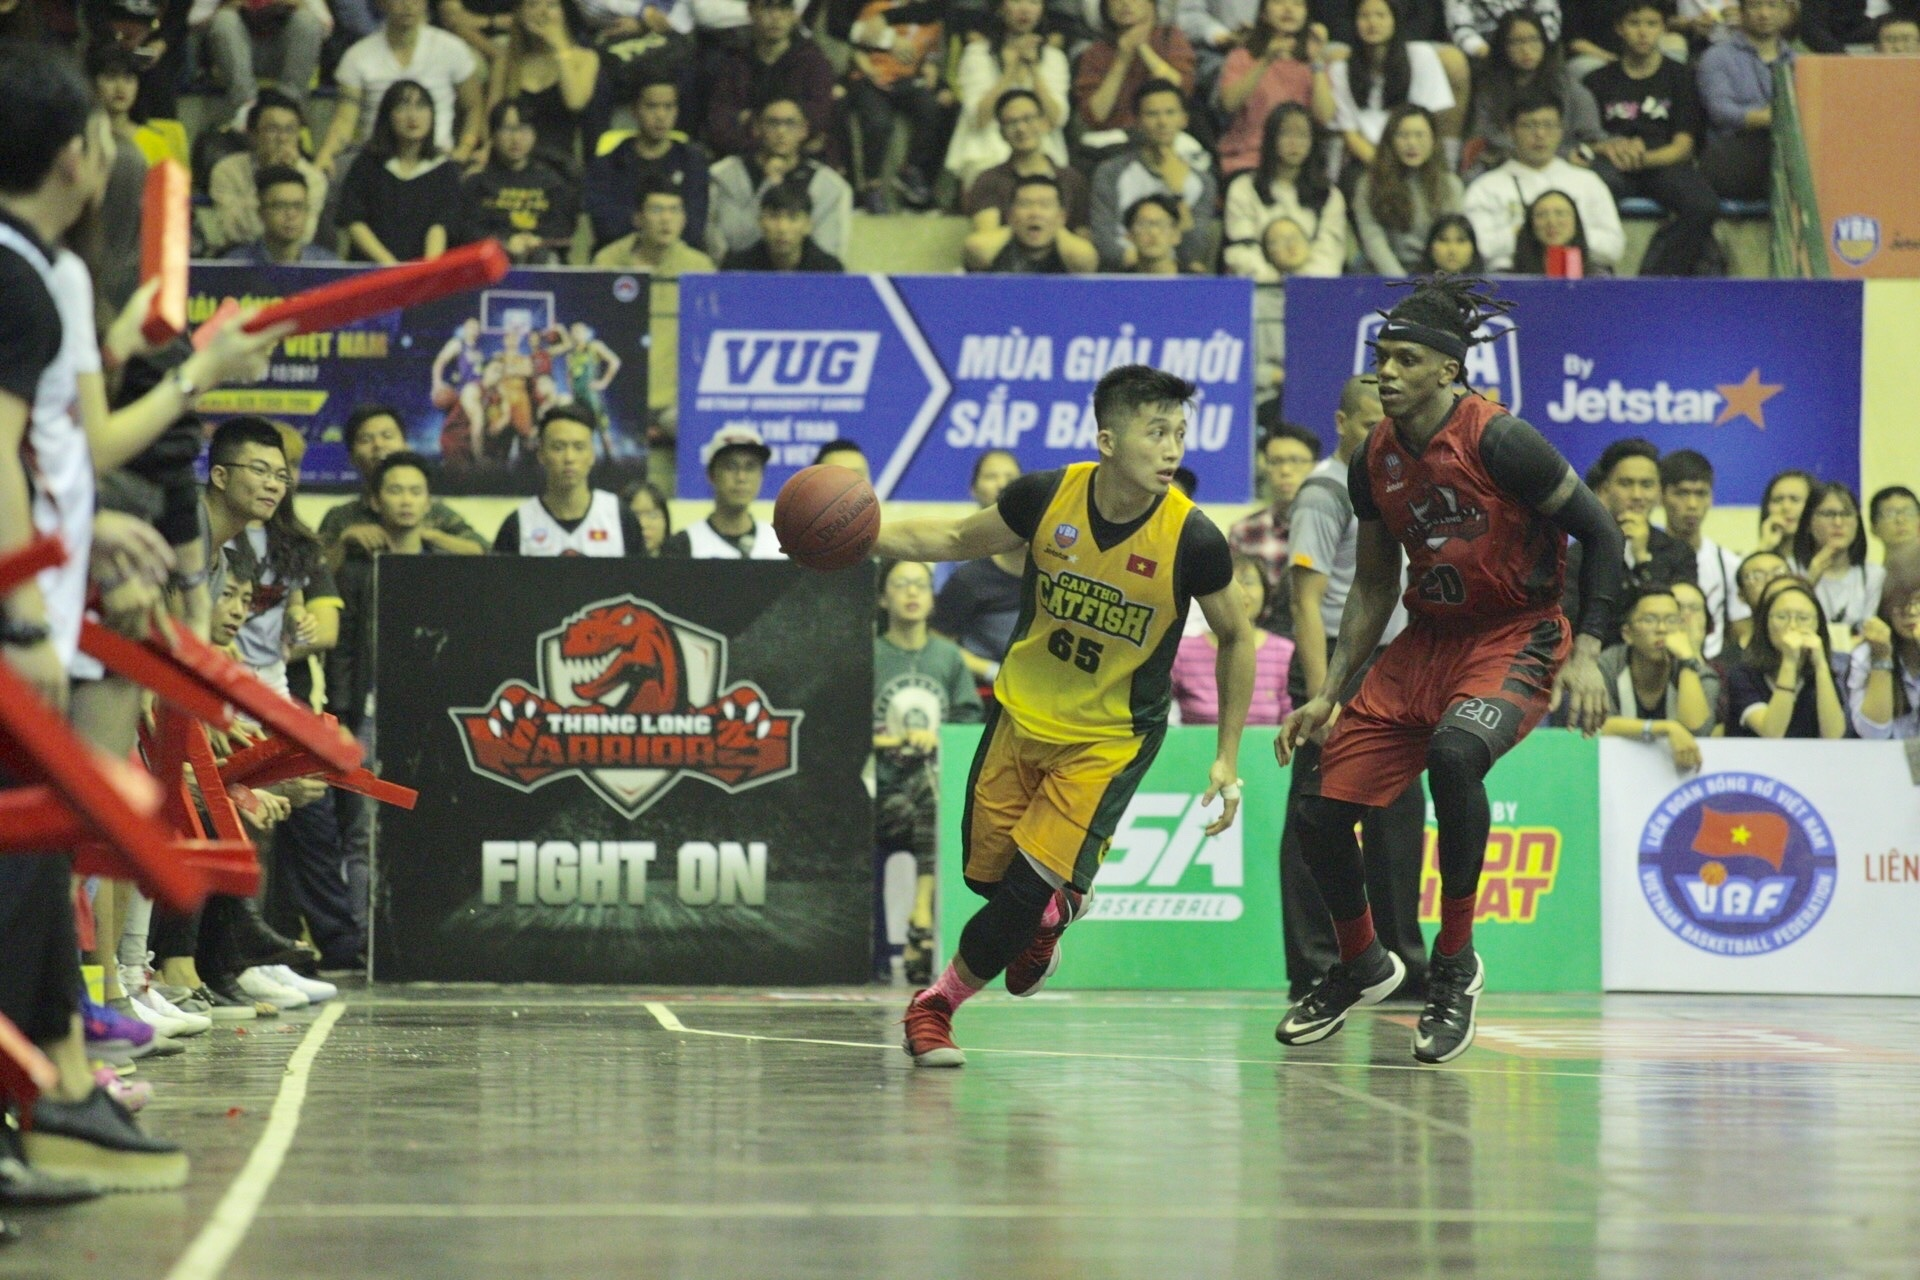 Thanglong Warriors vs Cantho Catfish anh 40